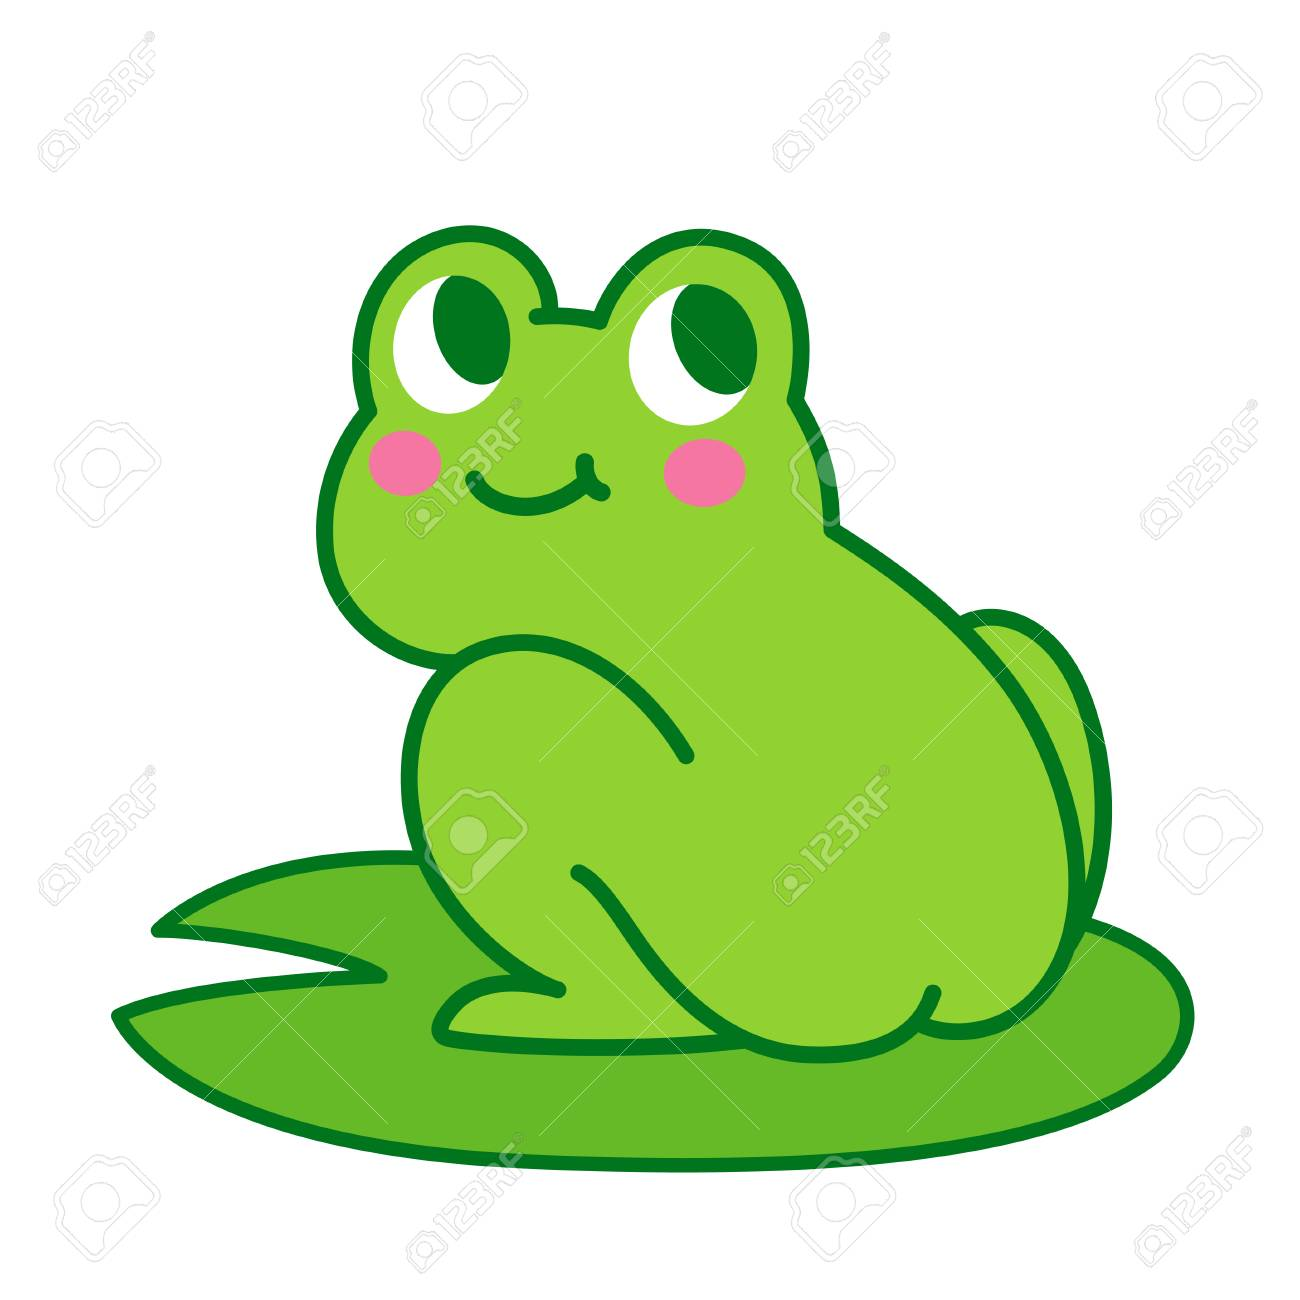 cute cartoon frog butt drawing funny illustration for children rh 123rf com frog vector art frog vector logo